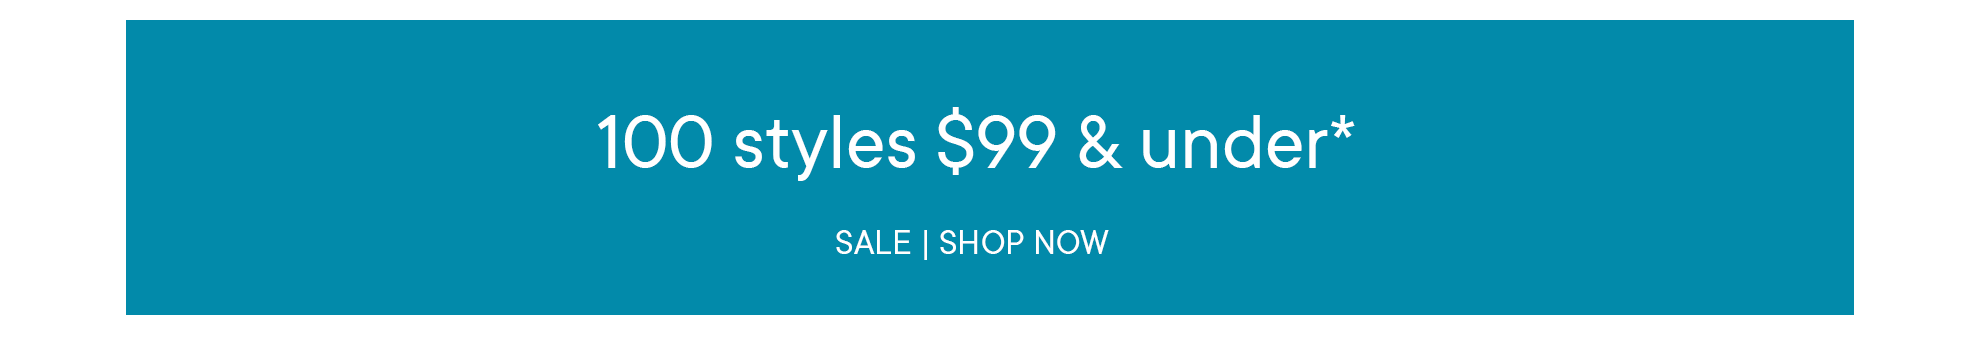 100 styles $99 AND UNDER*